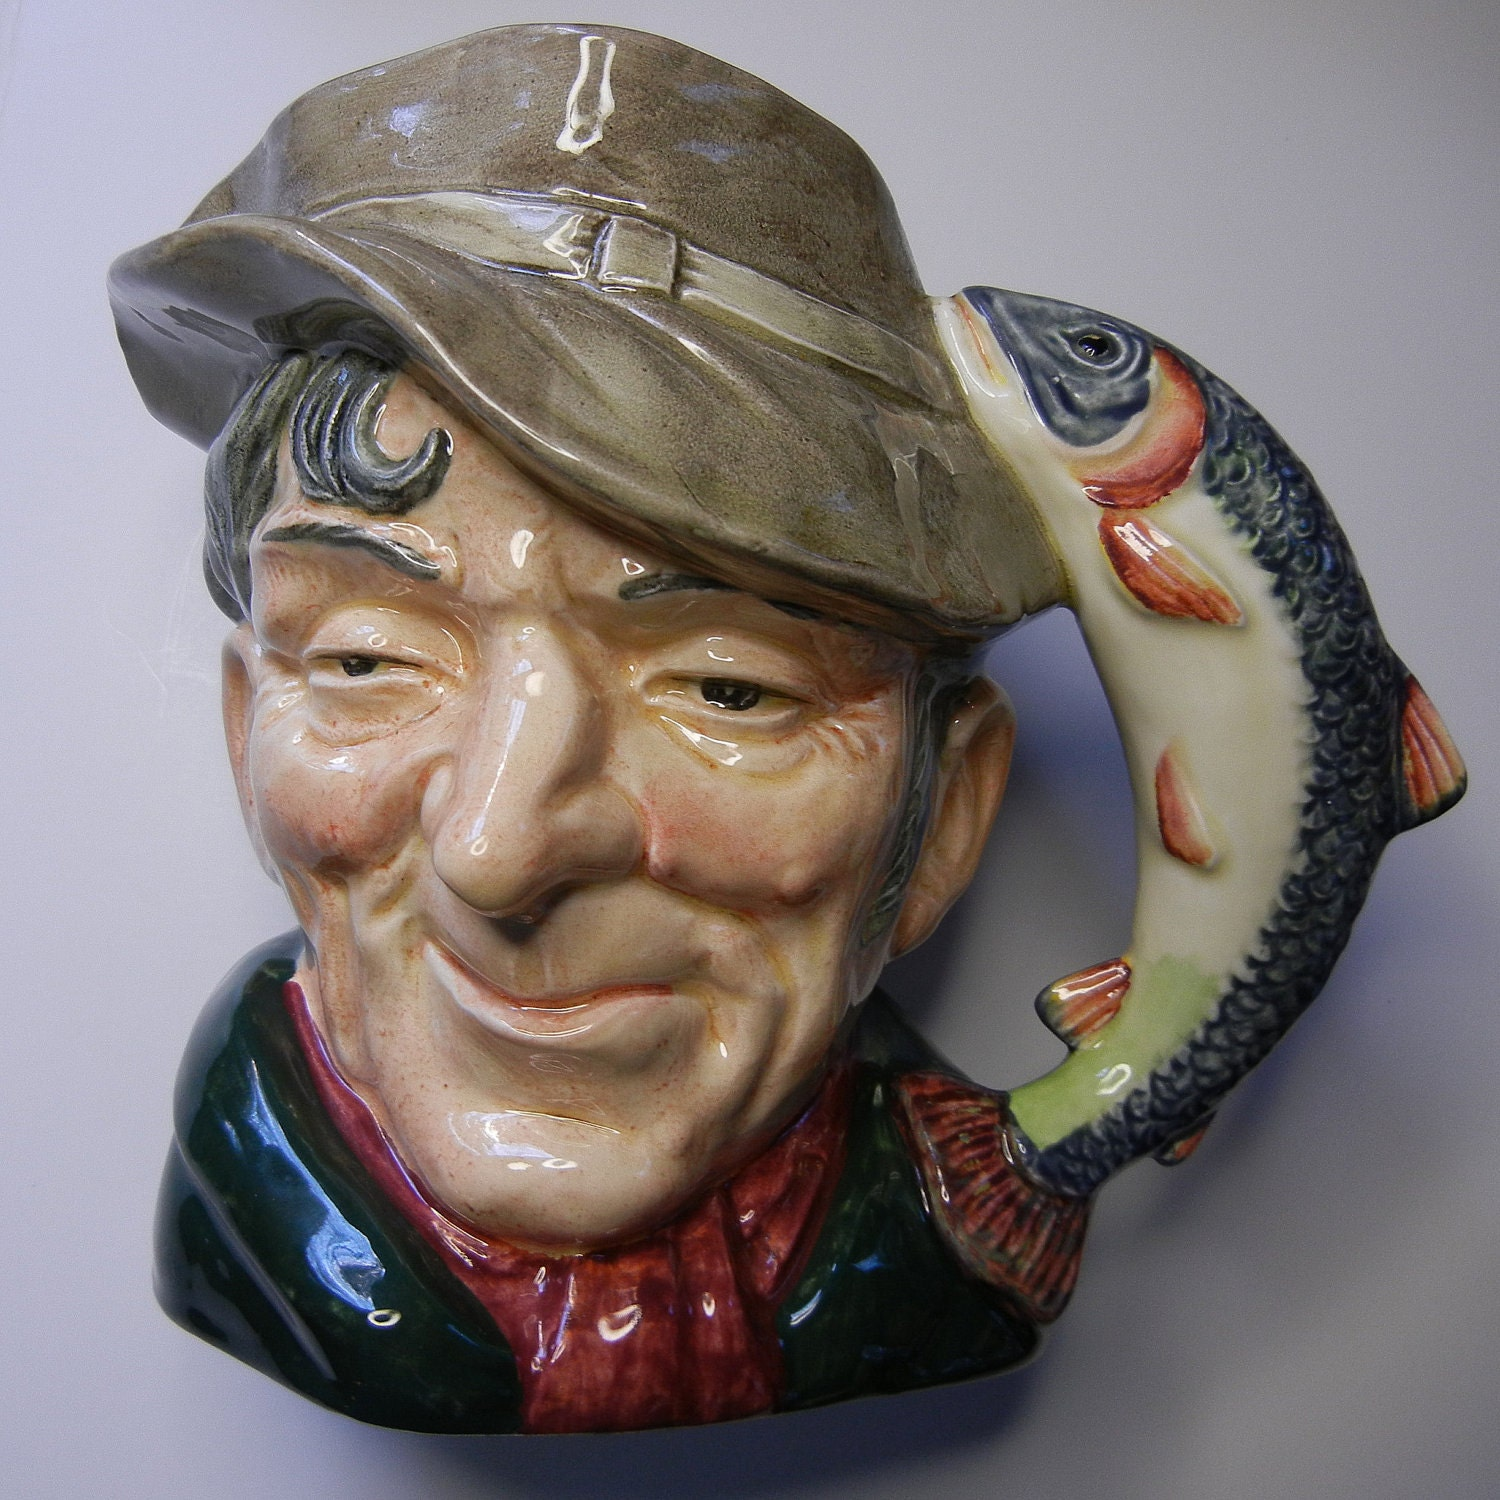 """dating royal doulton toby jugs Sculpture is equipped with the green royal doulton mark and also reads """"rdno 778640"""" dating  royal doulton toby jug  royal doulton collectibles royal."""